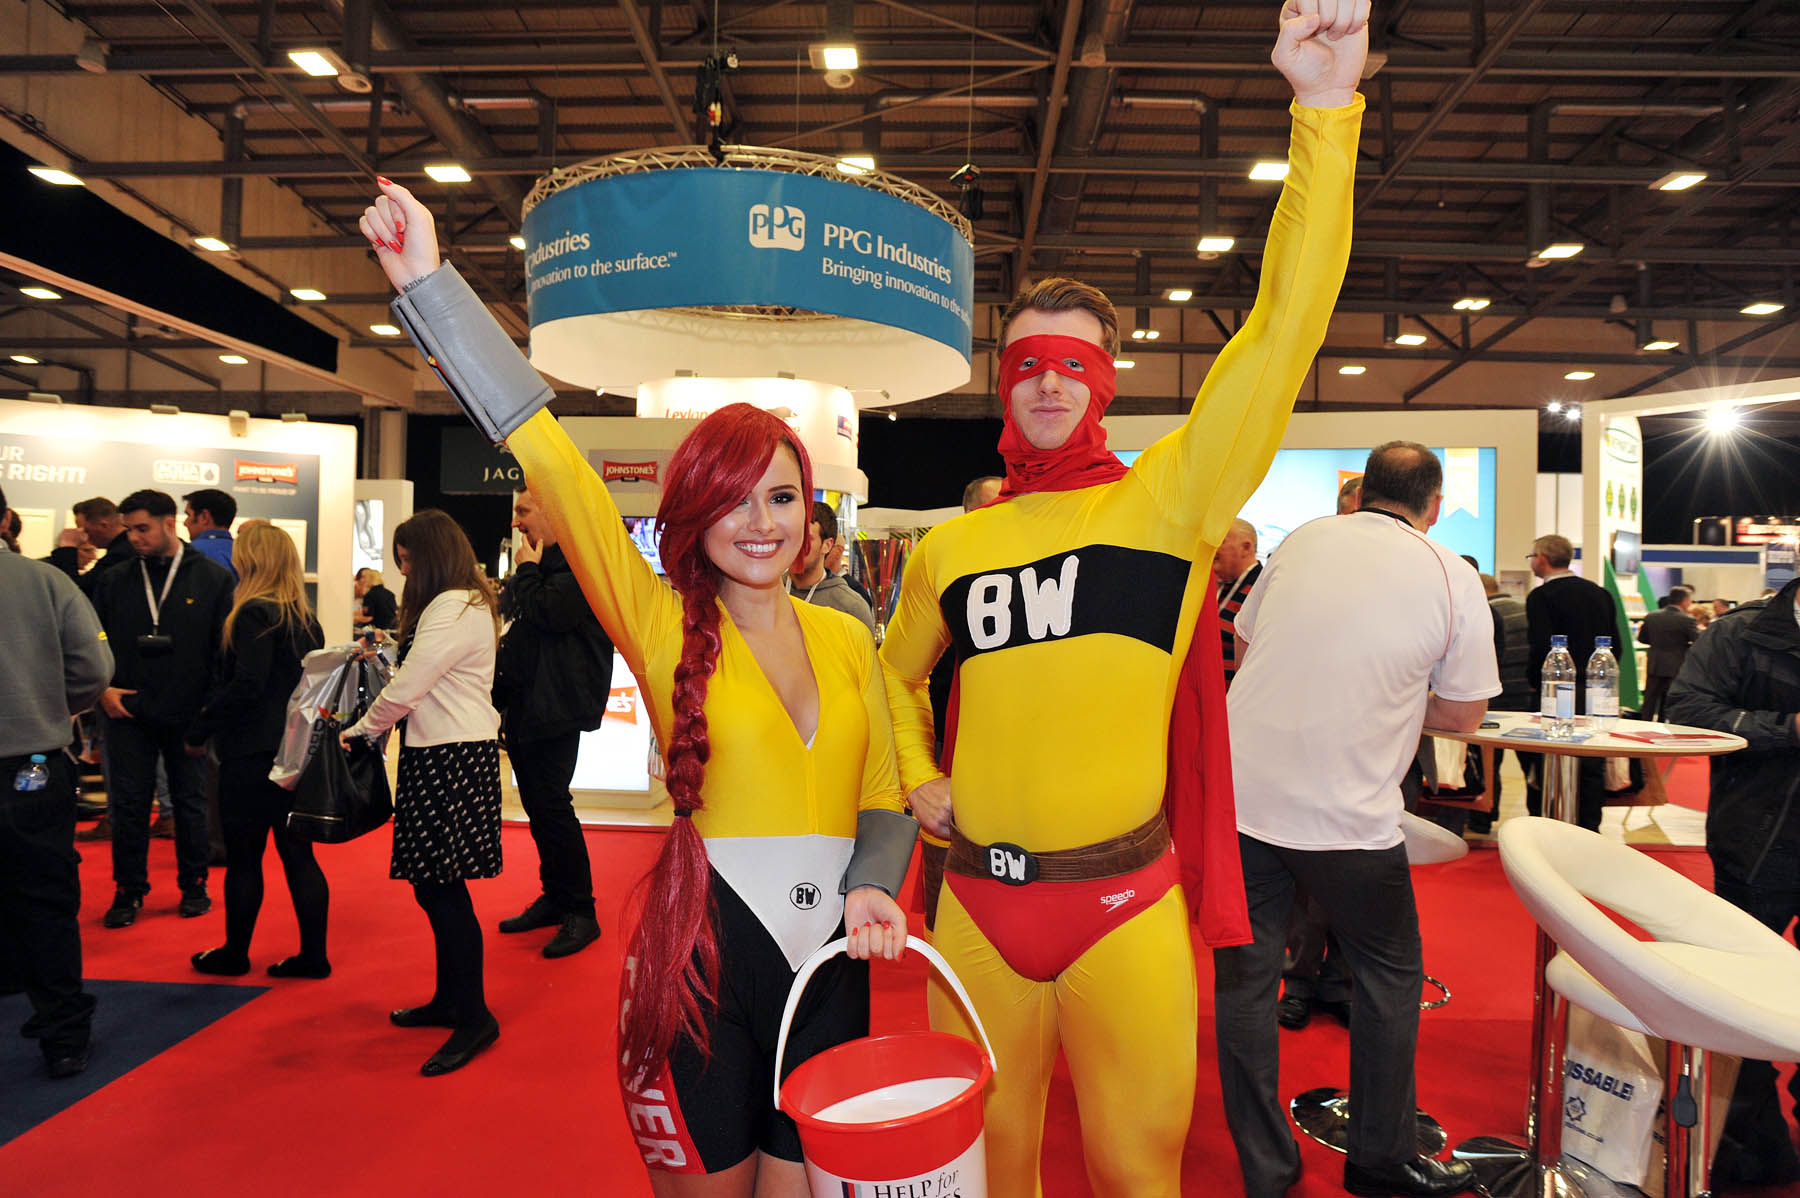 National Painting And Decorating Show - BW Superheros - Help For Heros Collection